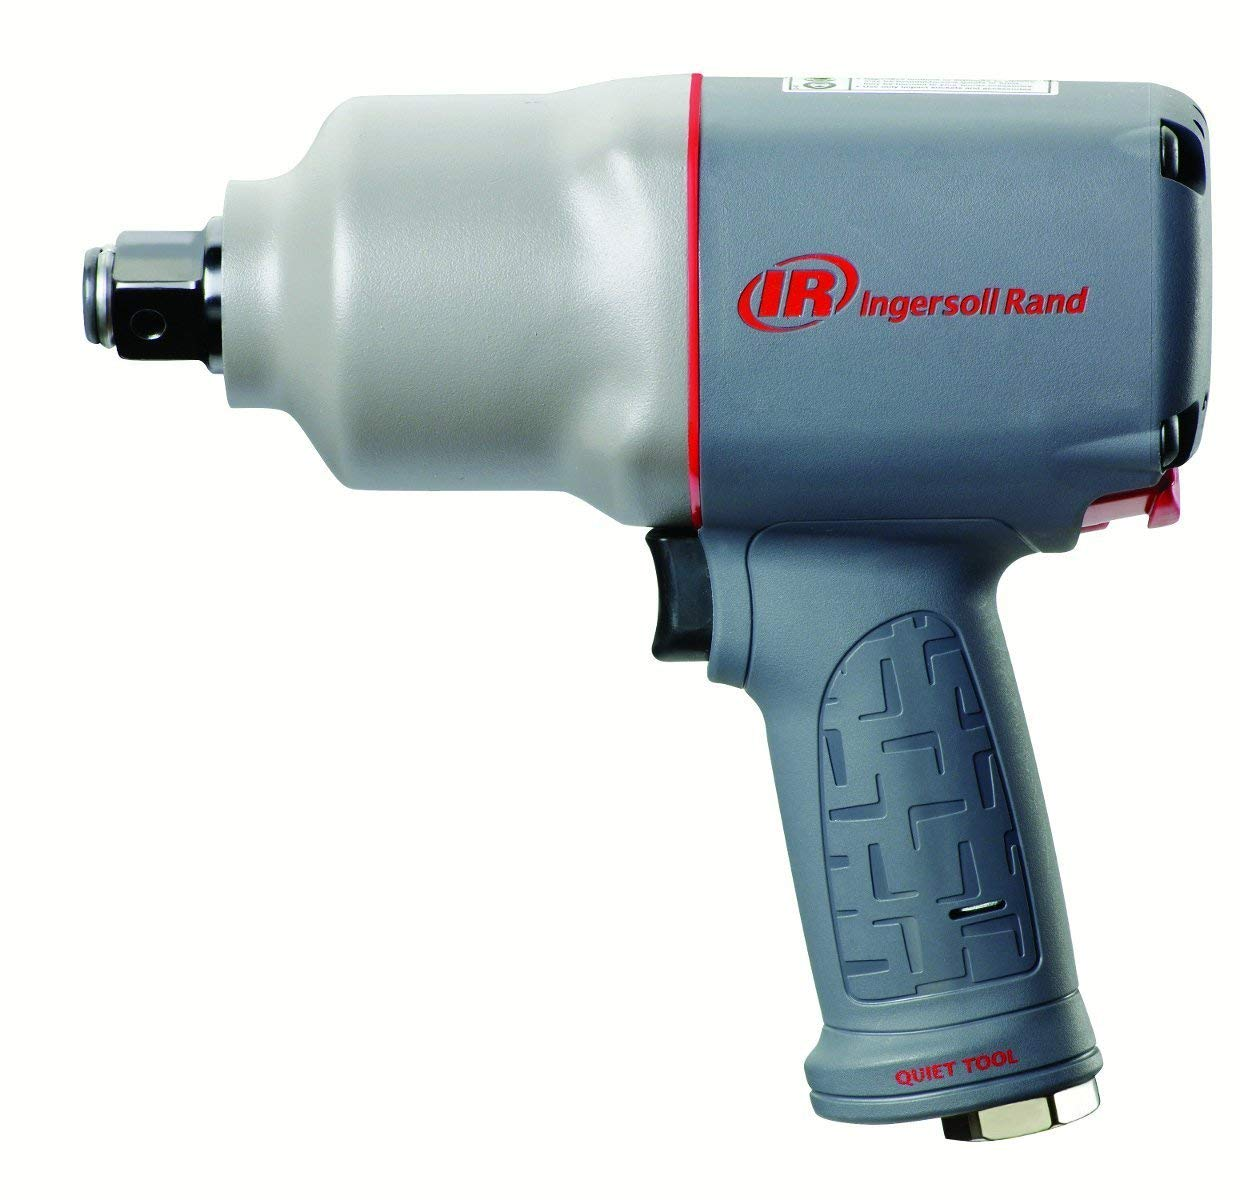 "Ingersoll Rand 3/4"" Composite Impact Wrench"